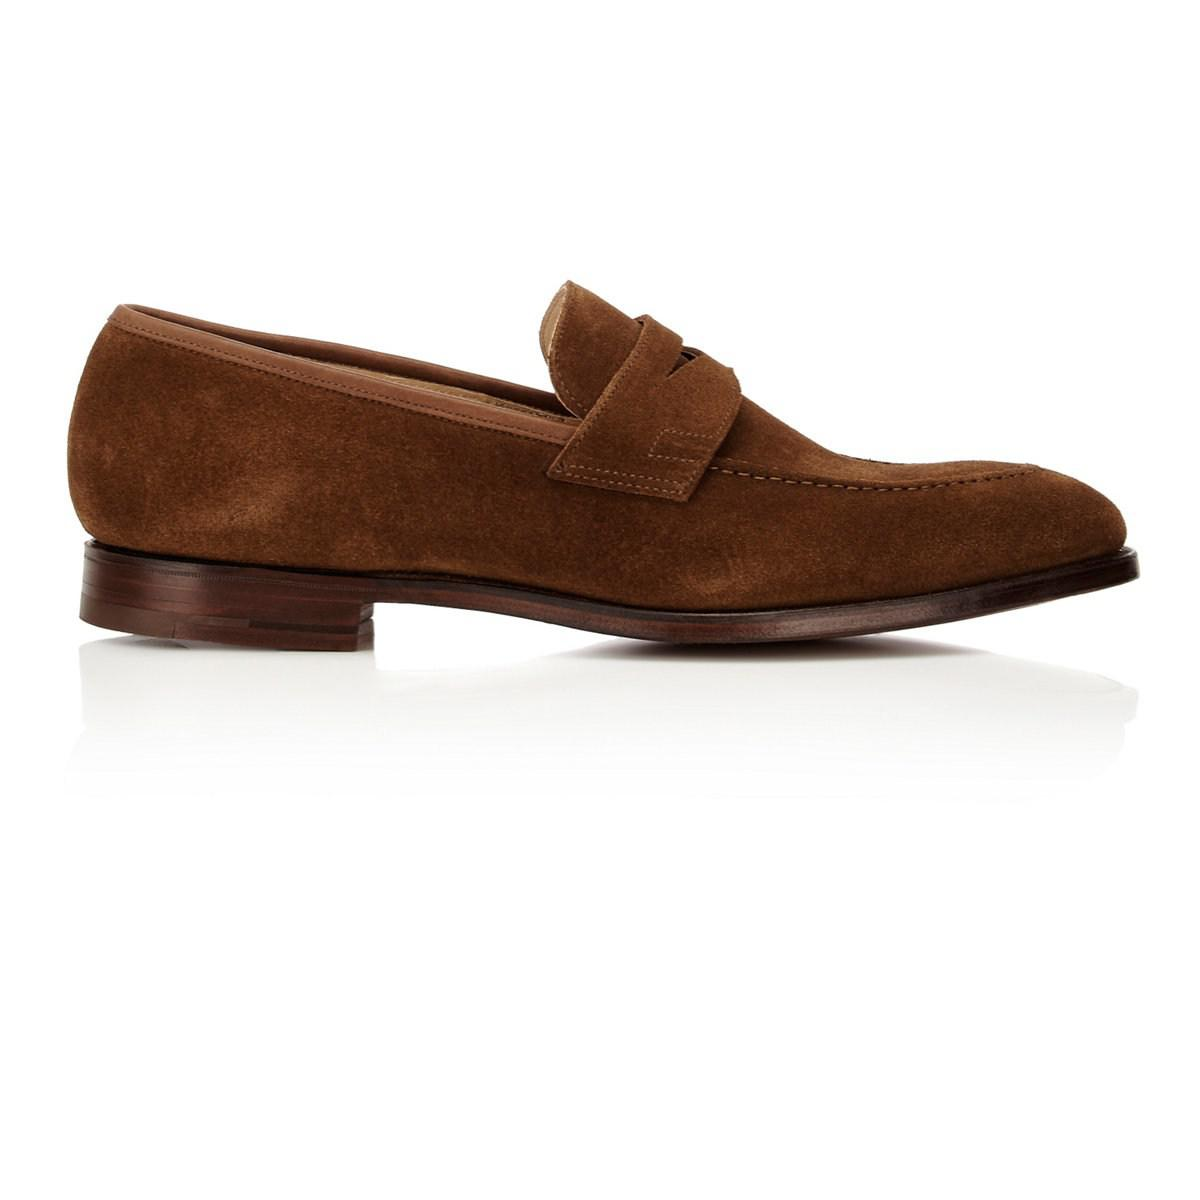 5470af121cc3a Lyst - Crockett and Jones Sydney Penny Loafers in Brown for Men ...